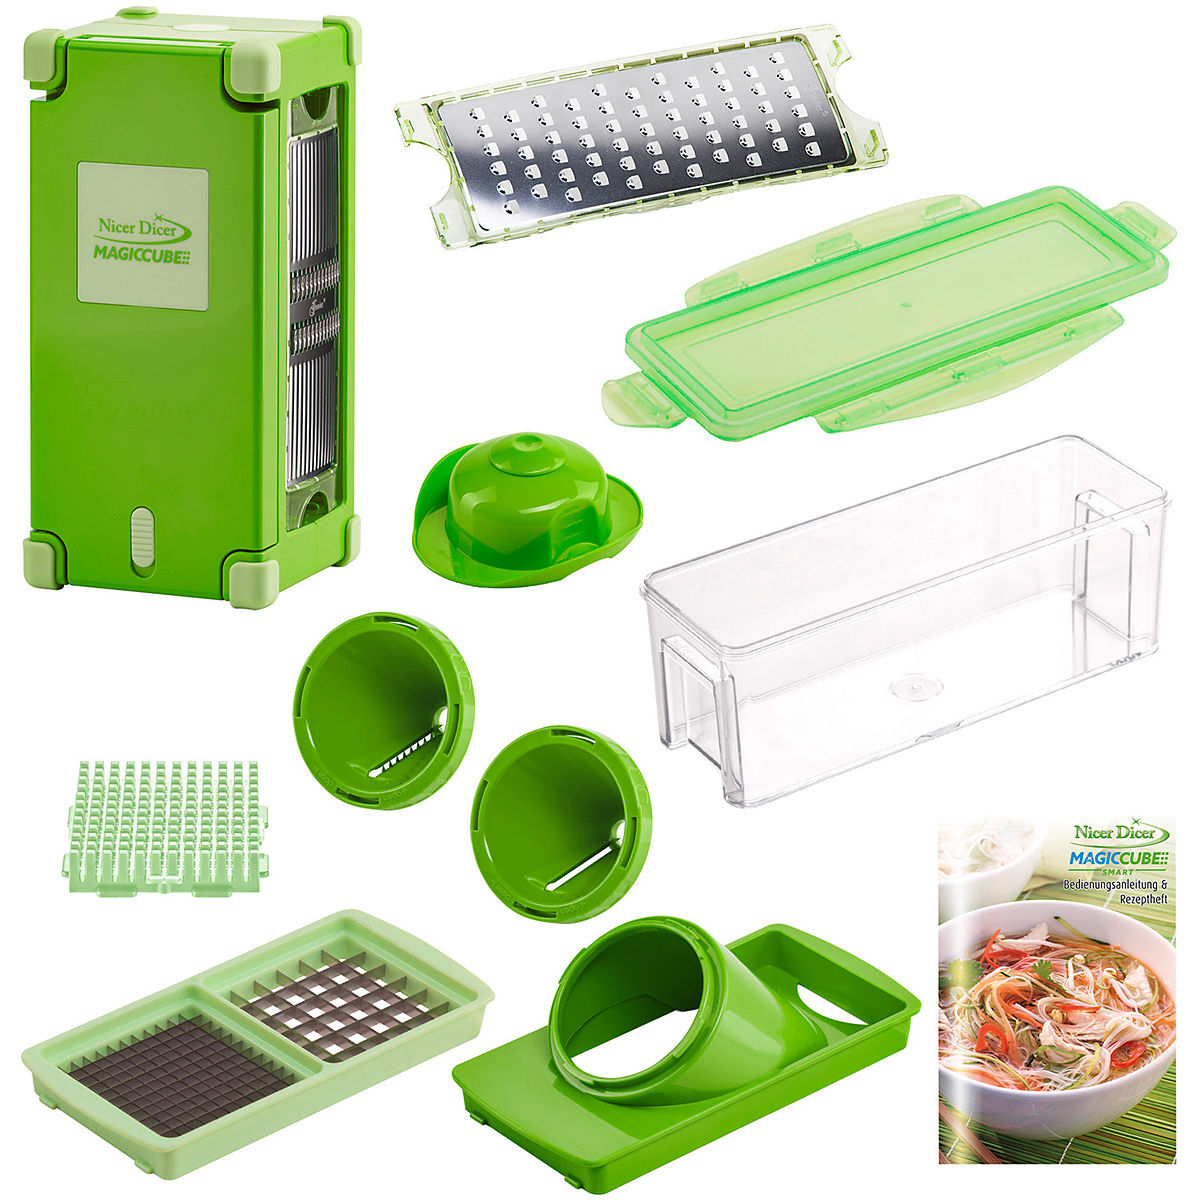 genius nicer dicer magic cube big 12 teilig karstadt online shop. Black Bedroom Furniture Sets. Home Design Ideas